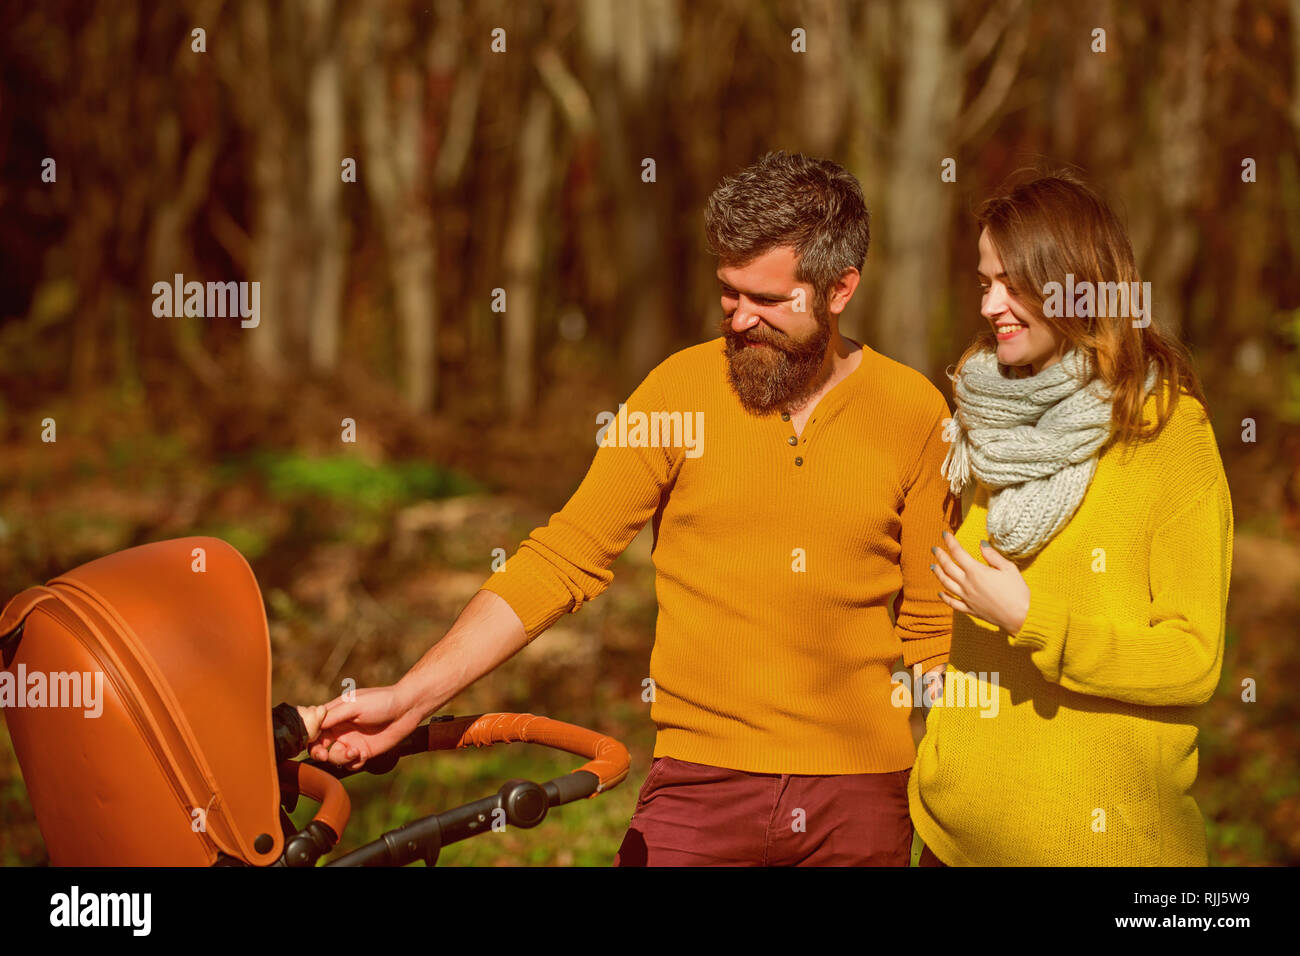 Happy family bond. Woman and man parent push baby stroller while walking through autumn park, family bond. We do it together - Stock Image